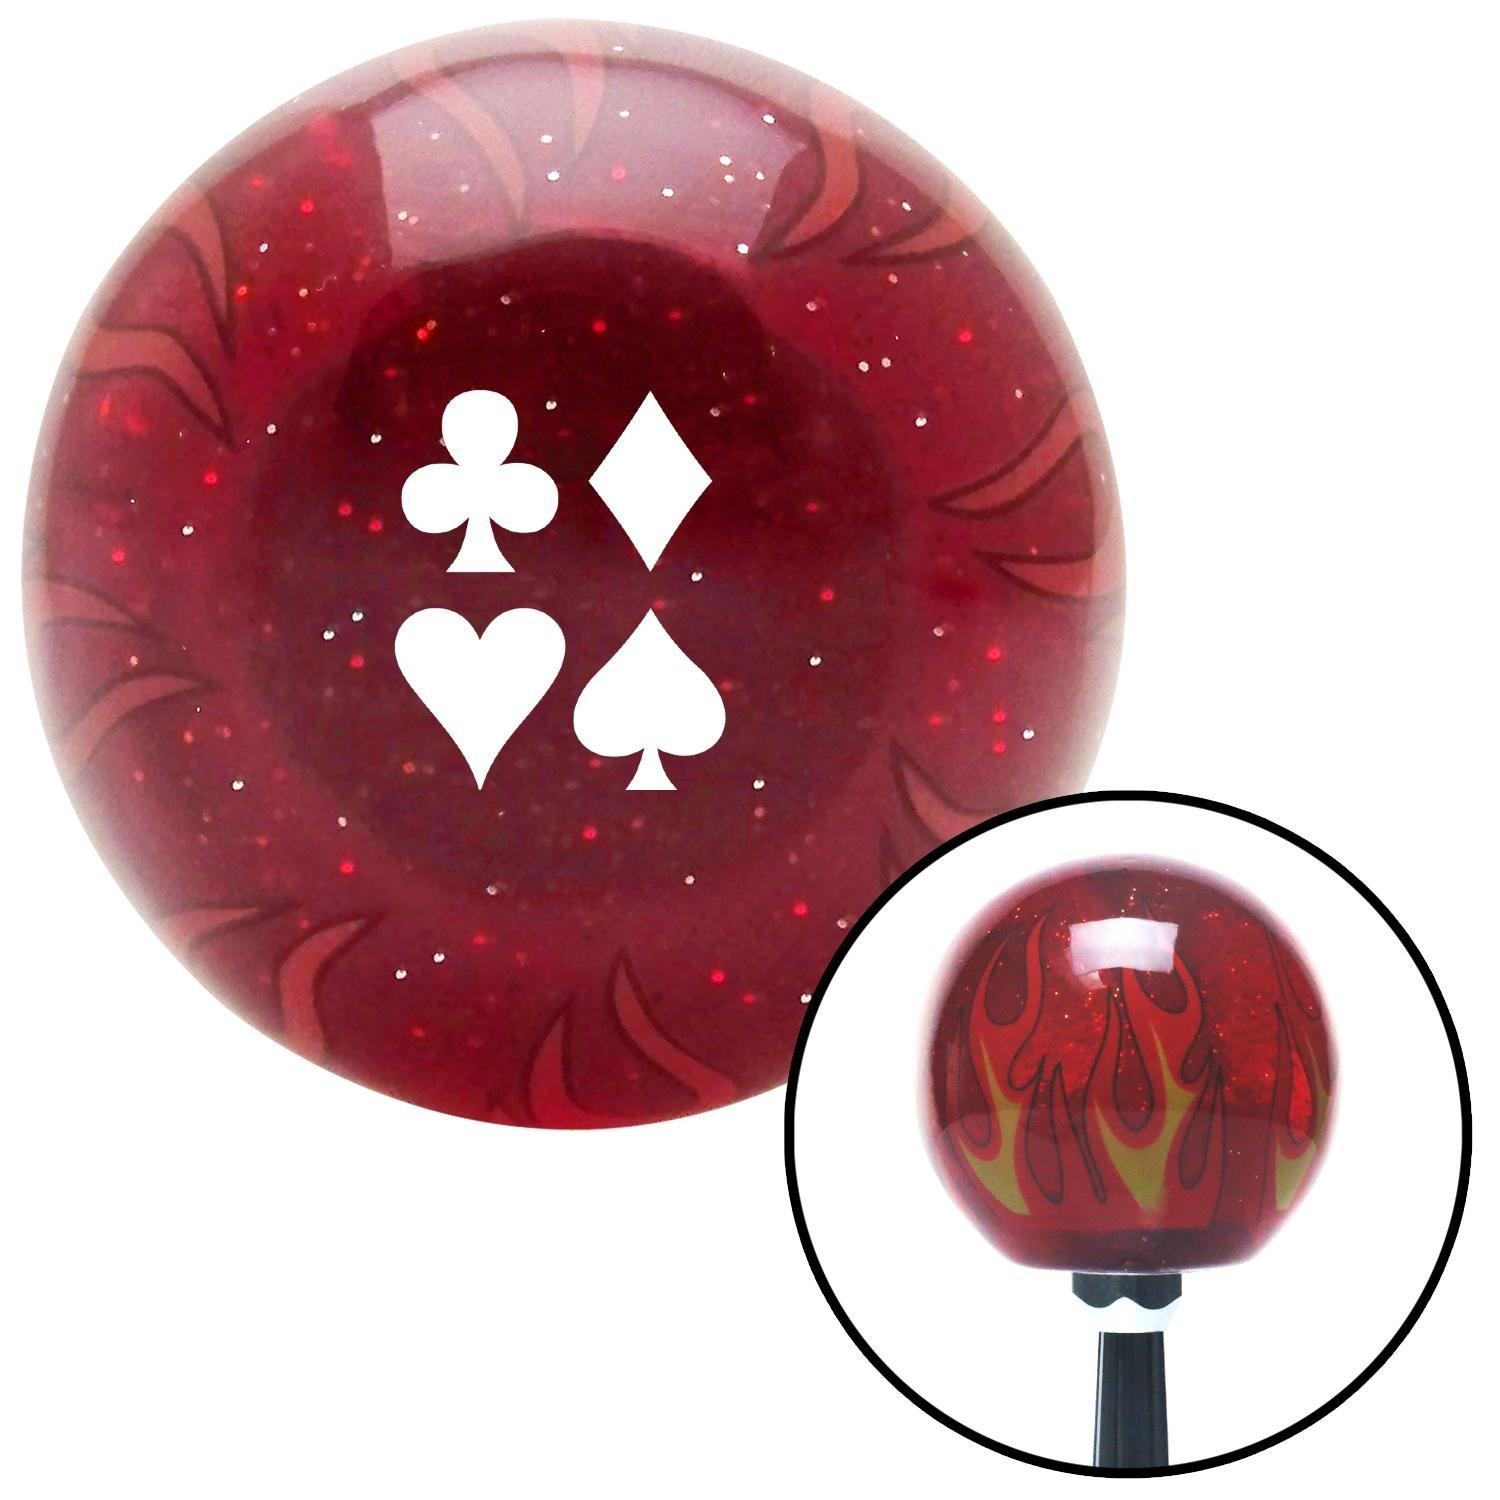 American Shifter 236560 Red Flame Metal Flake Shift Knob with M16 x 1.5 Insert White Clubs Diamond Heart Spades